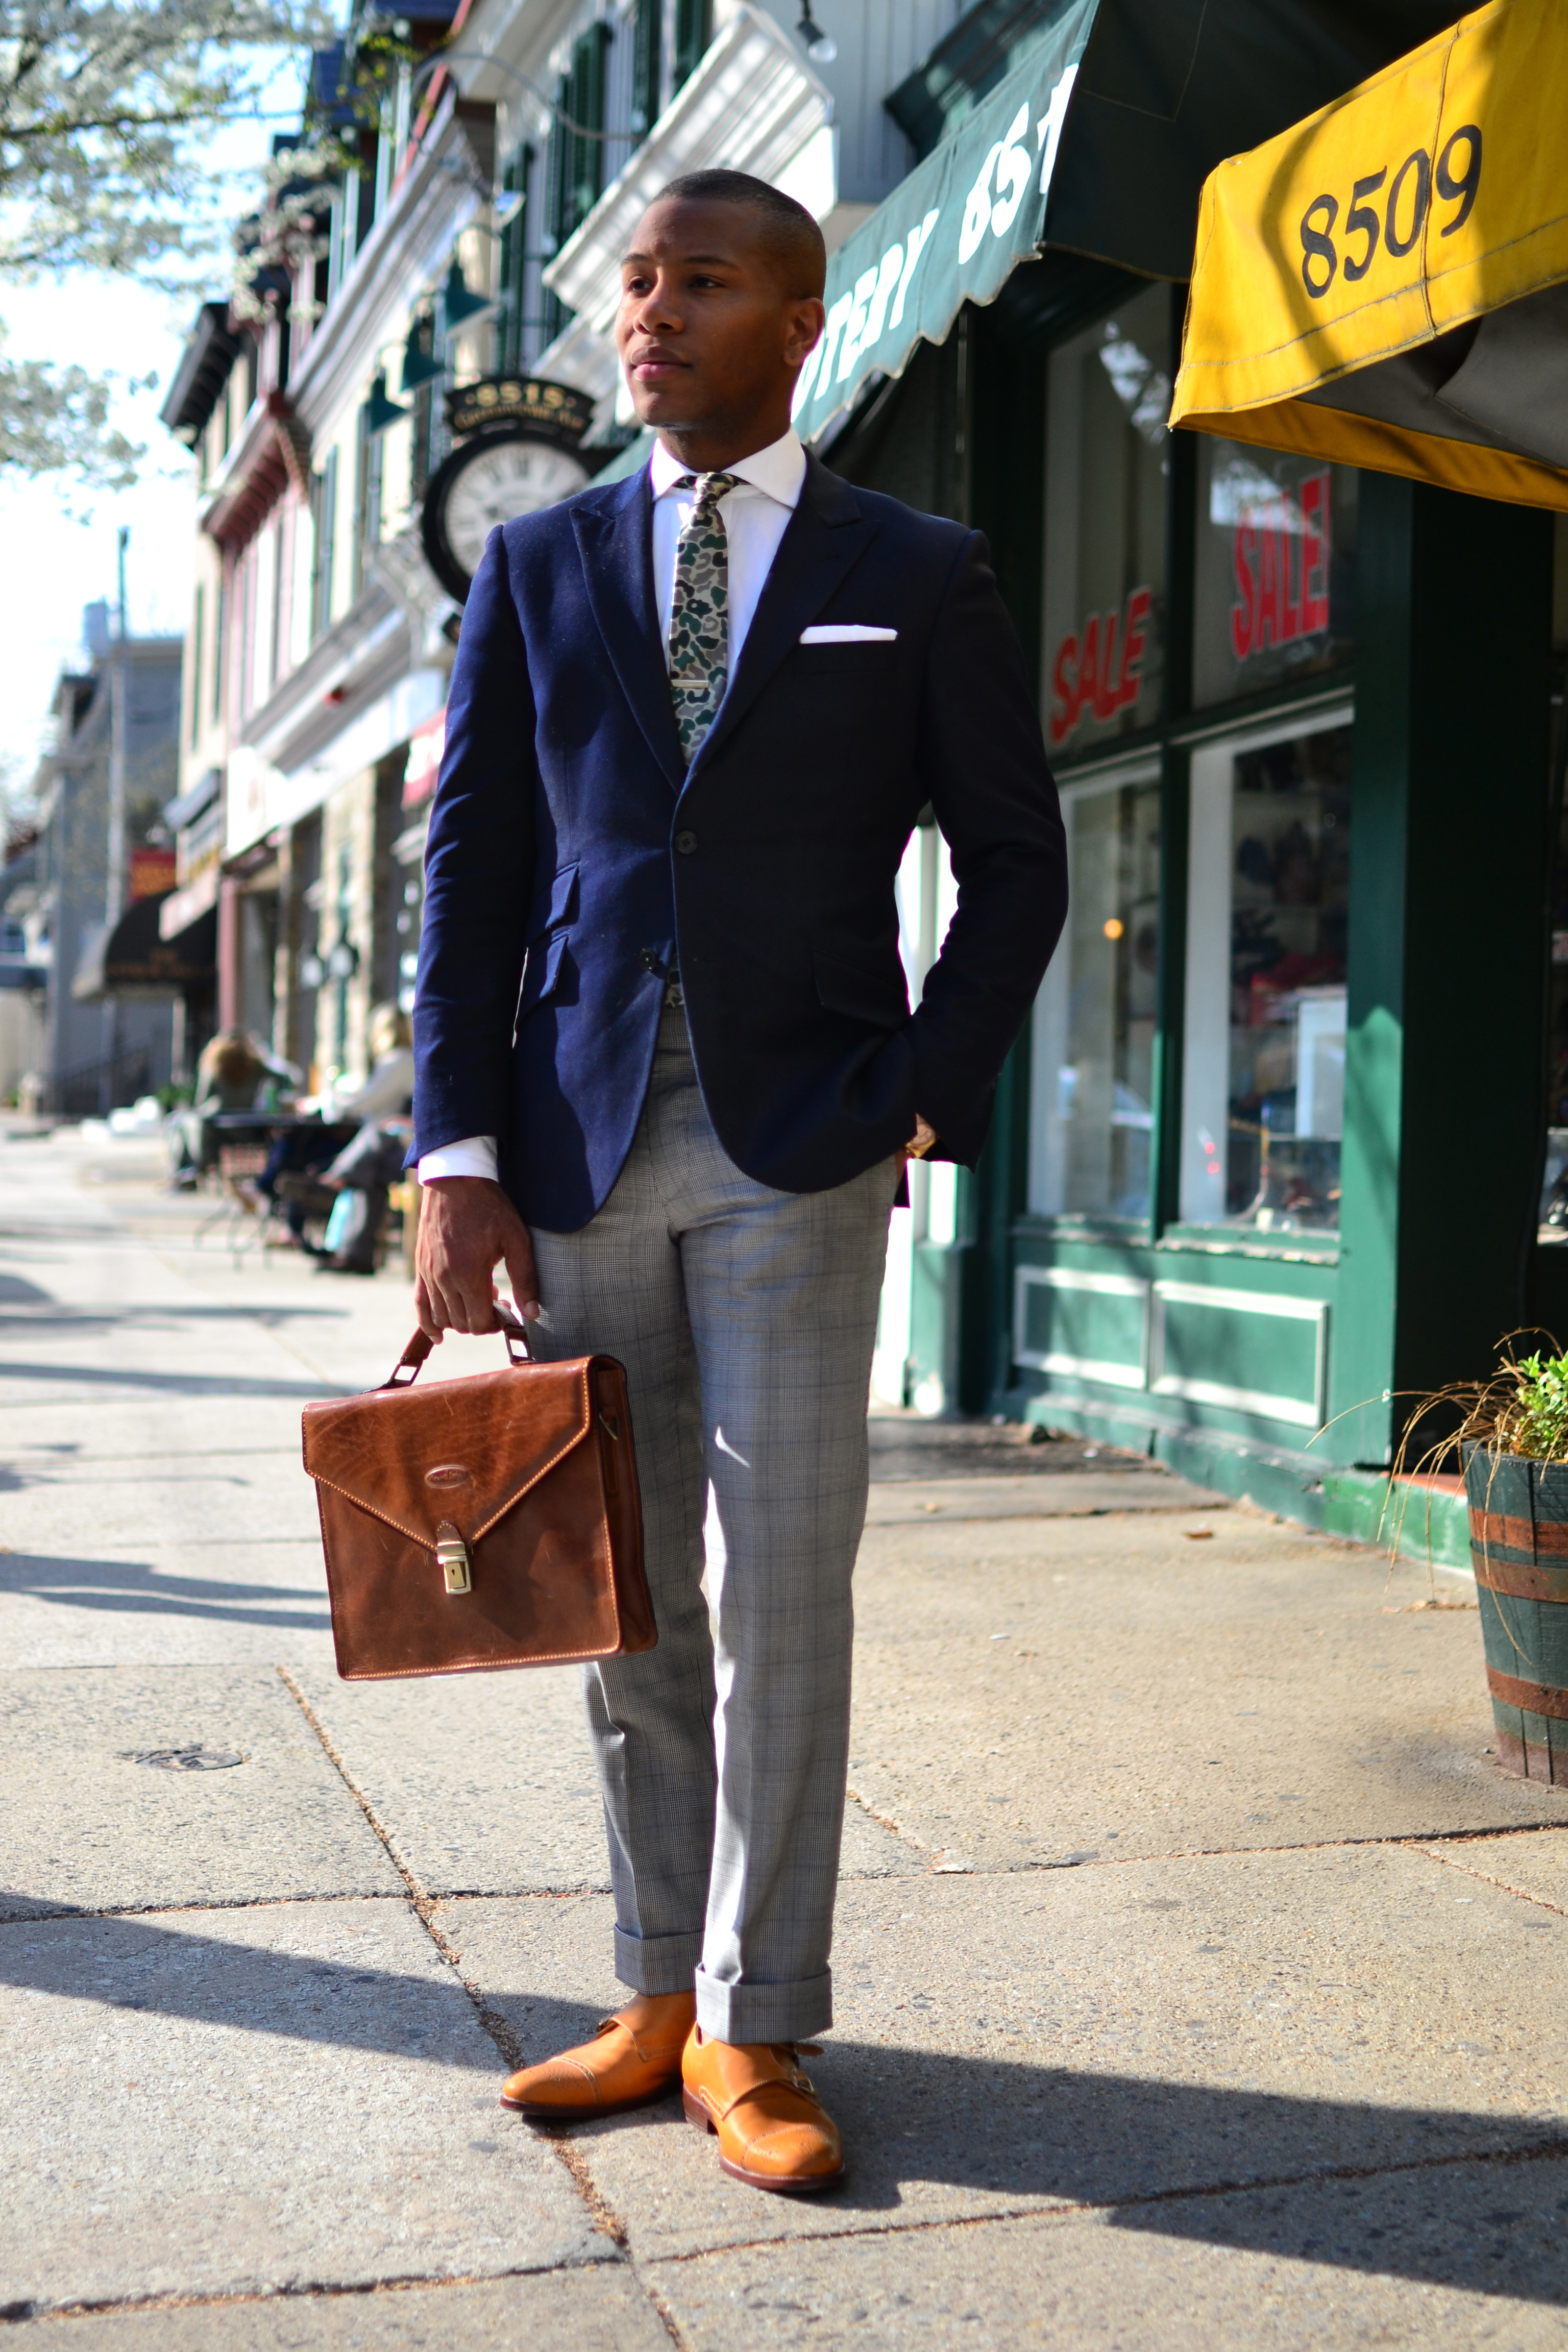 Sabir Peele in Cutaway Collar shirts by Hugh & Crye